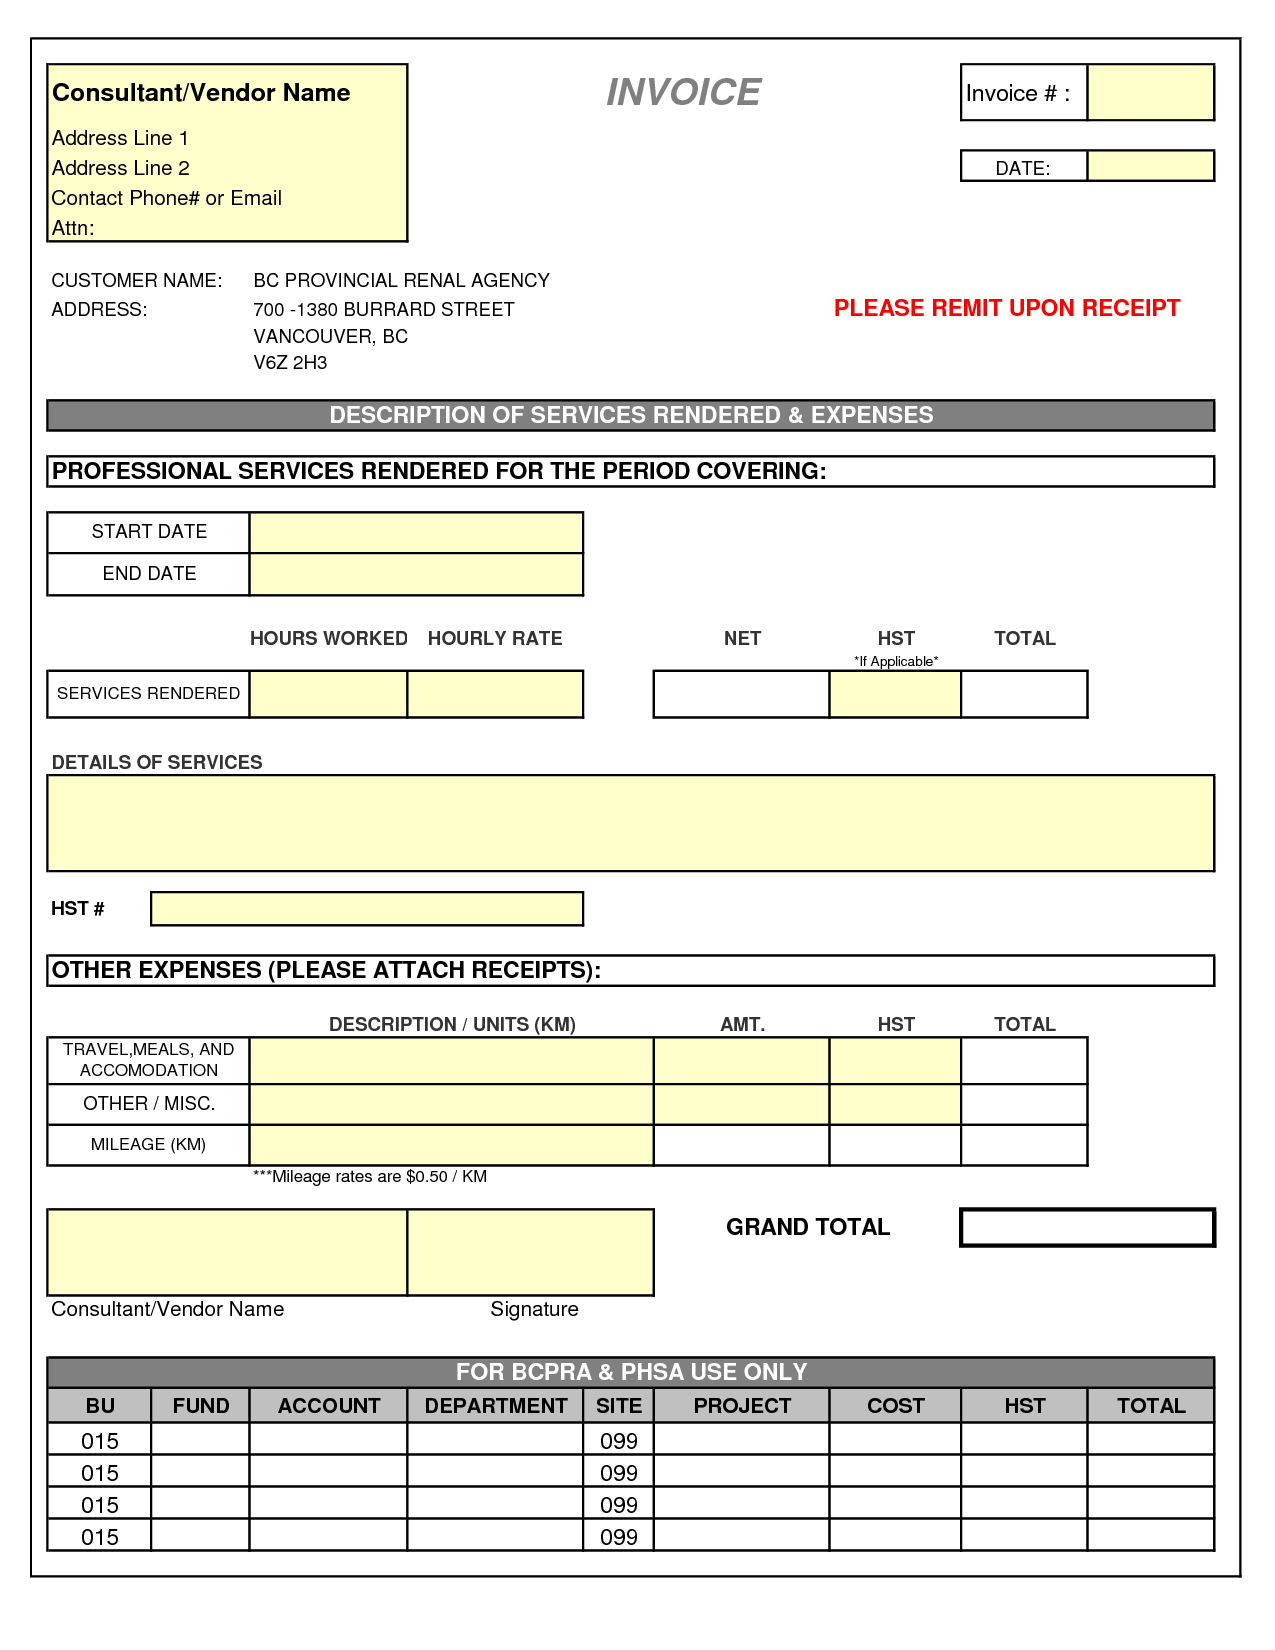 Simple Invoice Template Excel  Jongblogcom BdDfGq  For Work